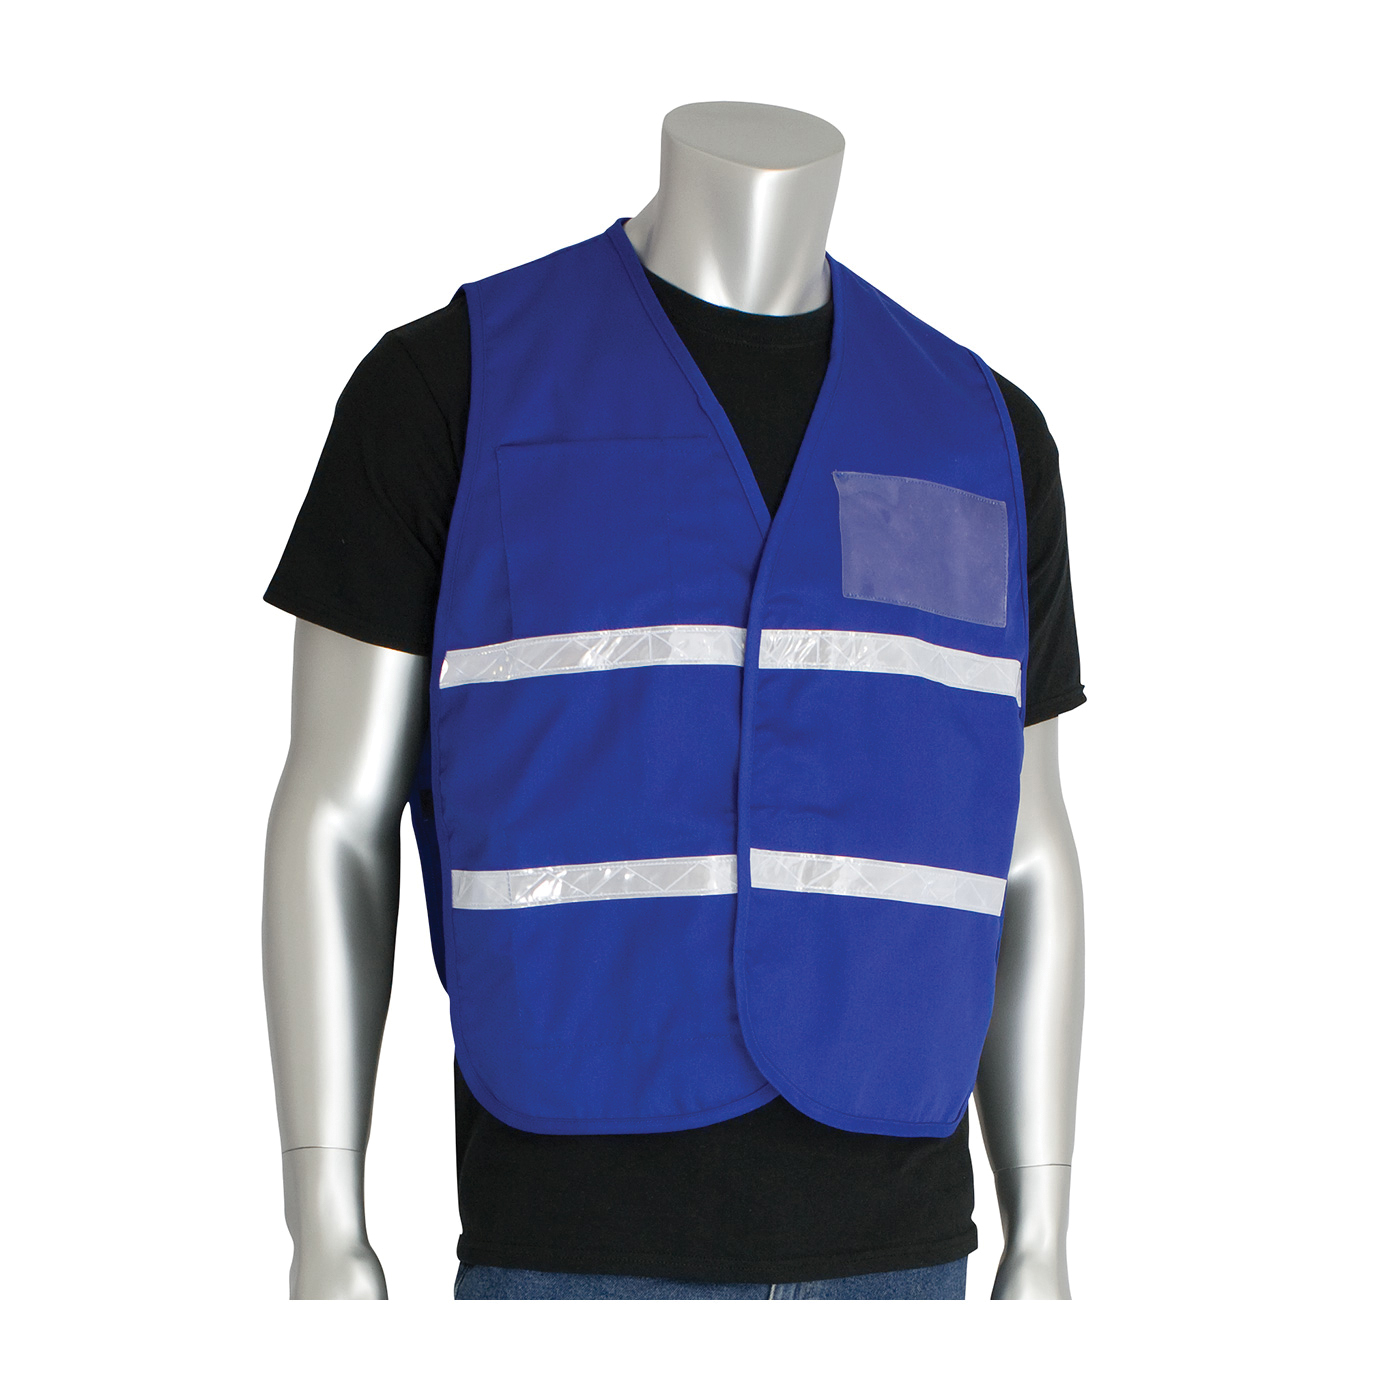 PIP® 300-1504/2X-3X Incident Command Vest, 2XL/3XL, Royal Blue, Polyester, 42.1 in Chest, Hook and Loop Closure